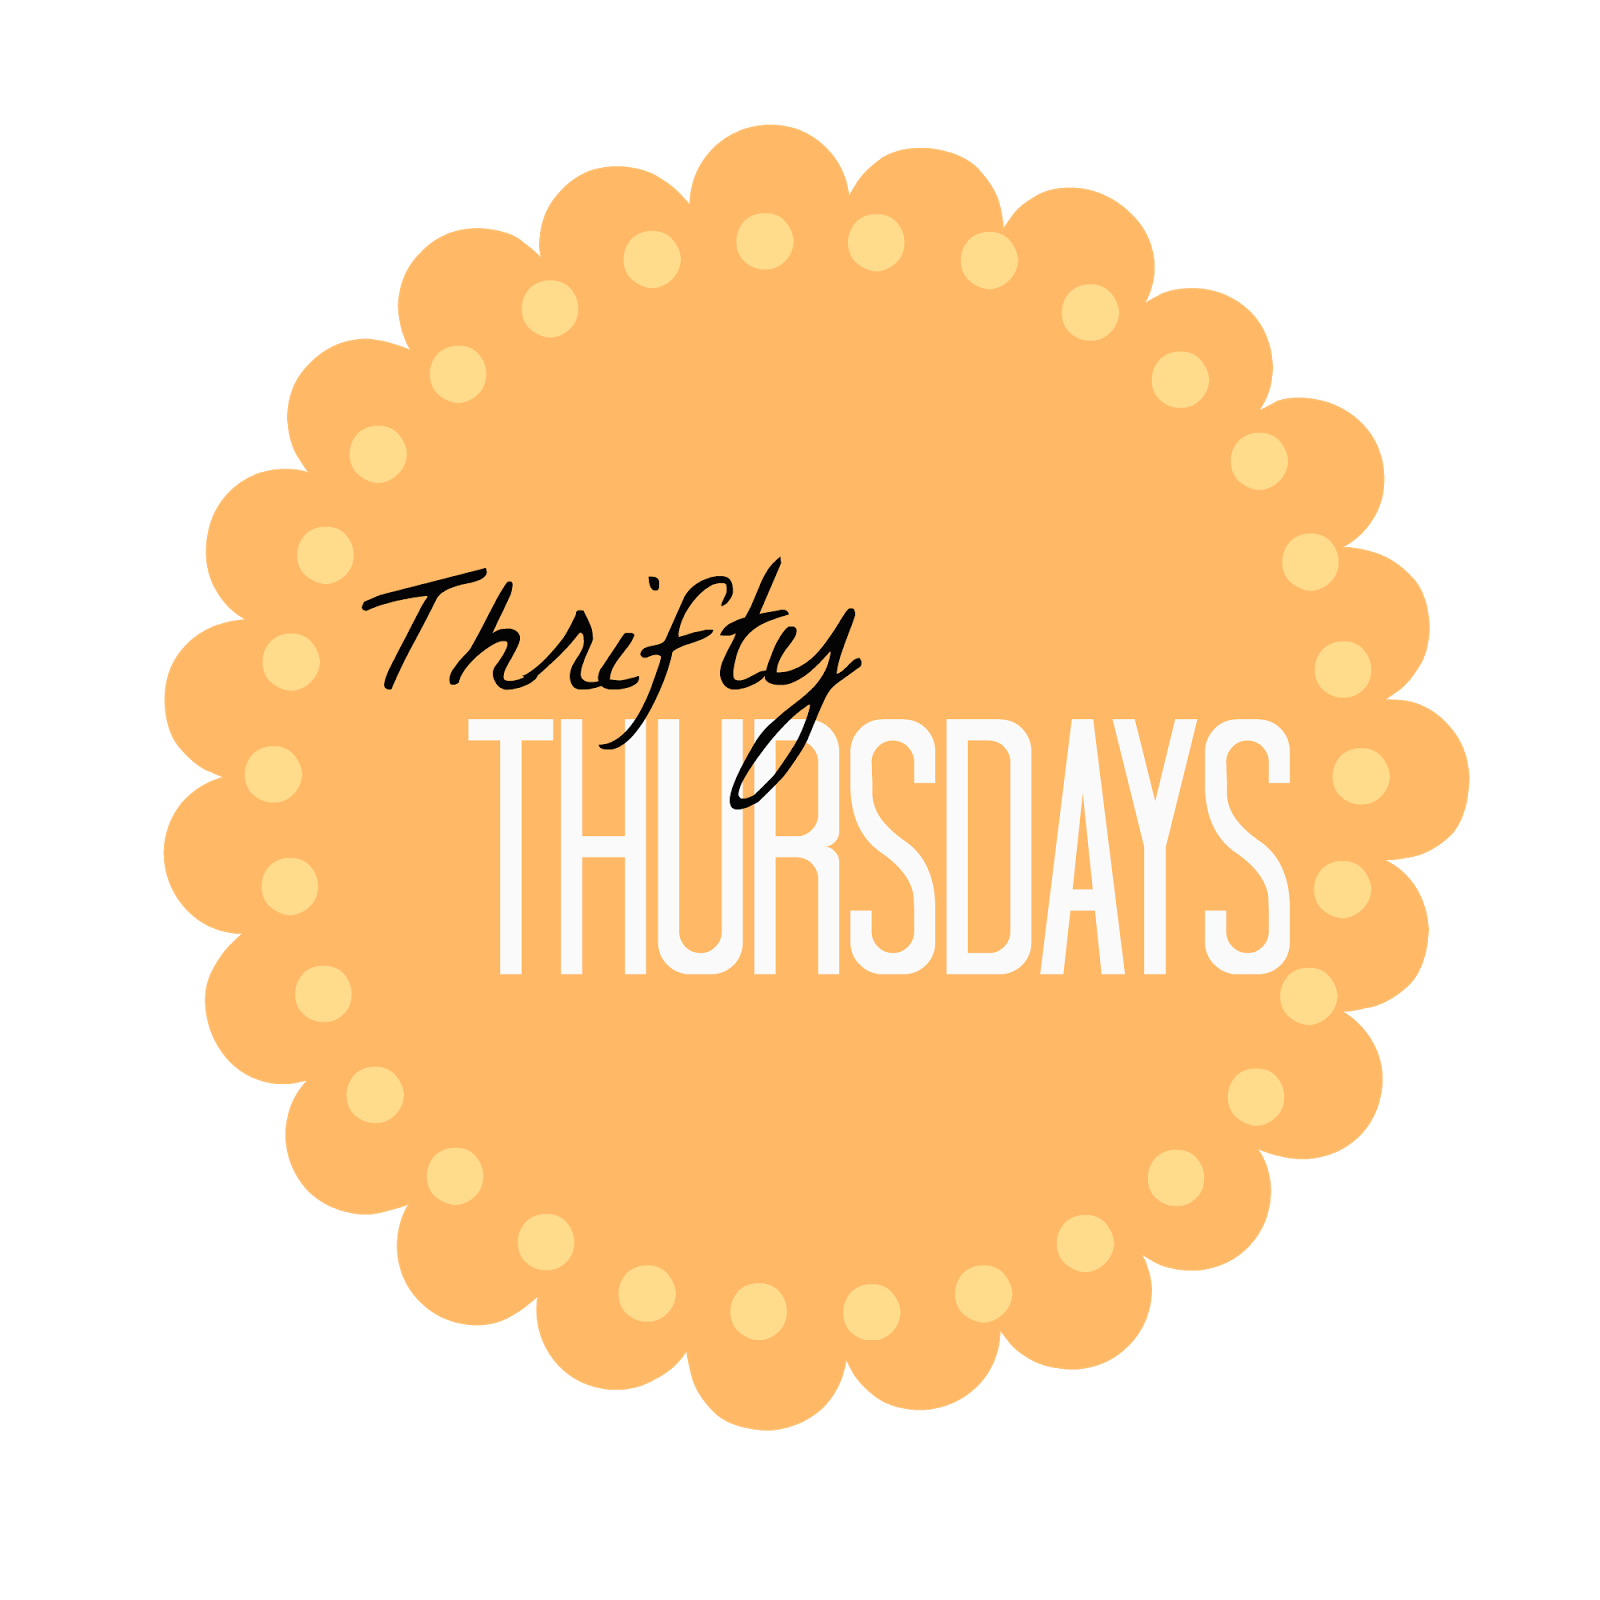 Thrifty Thursdays